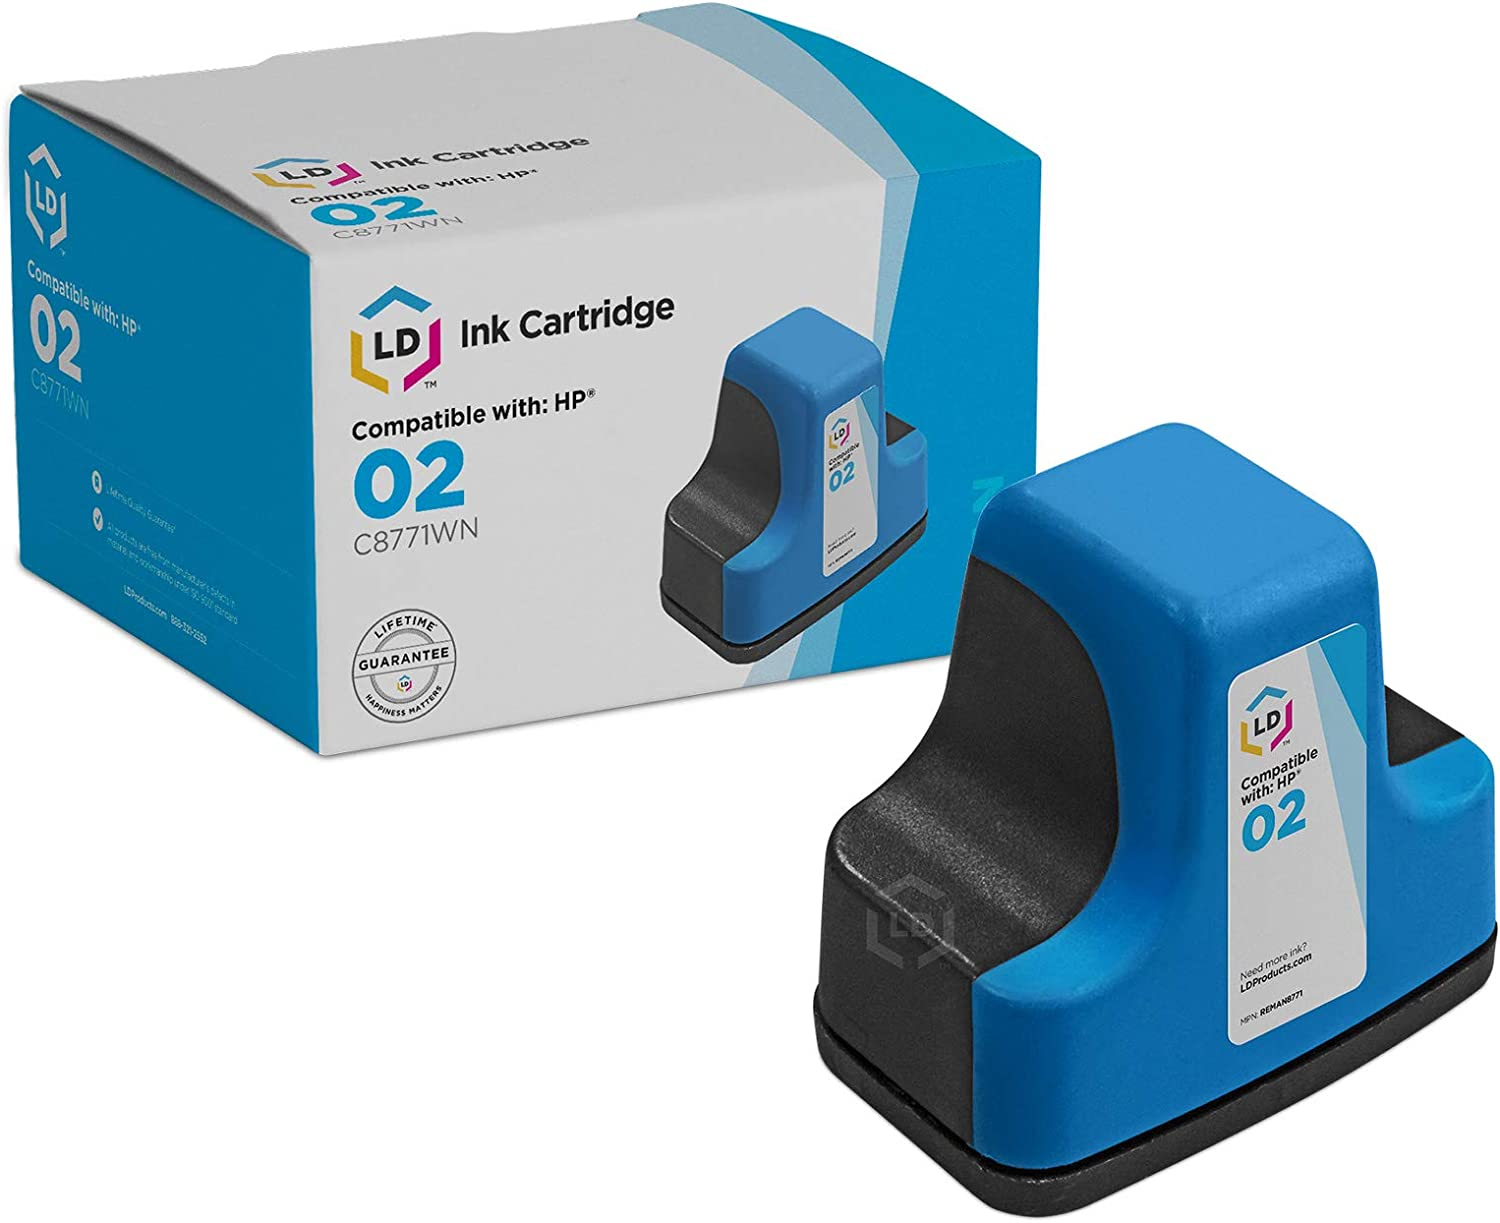 LD Products Remanufactured Replacement for HP 02 / C8771WN Cyan Ink Cartridge for HP Photosmart Printer Series